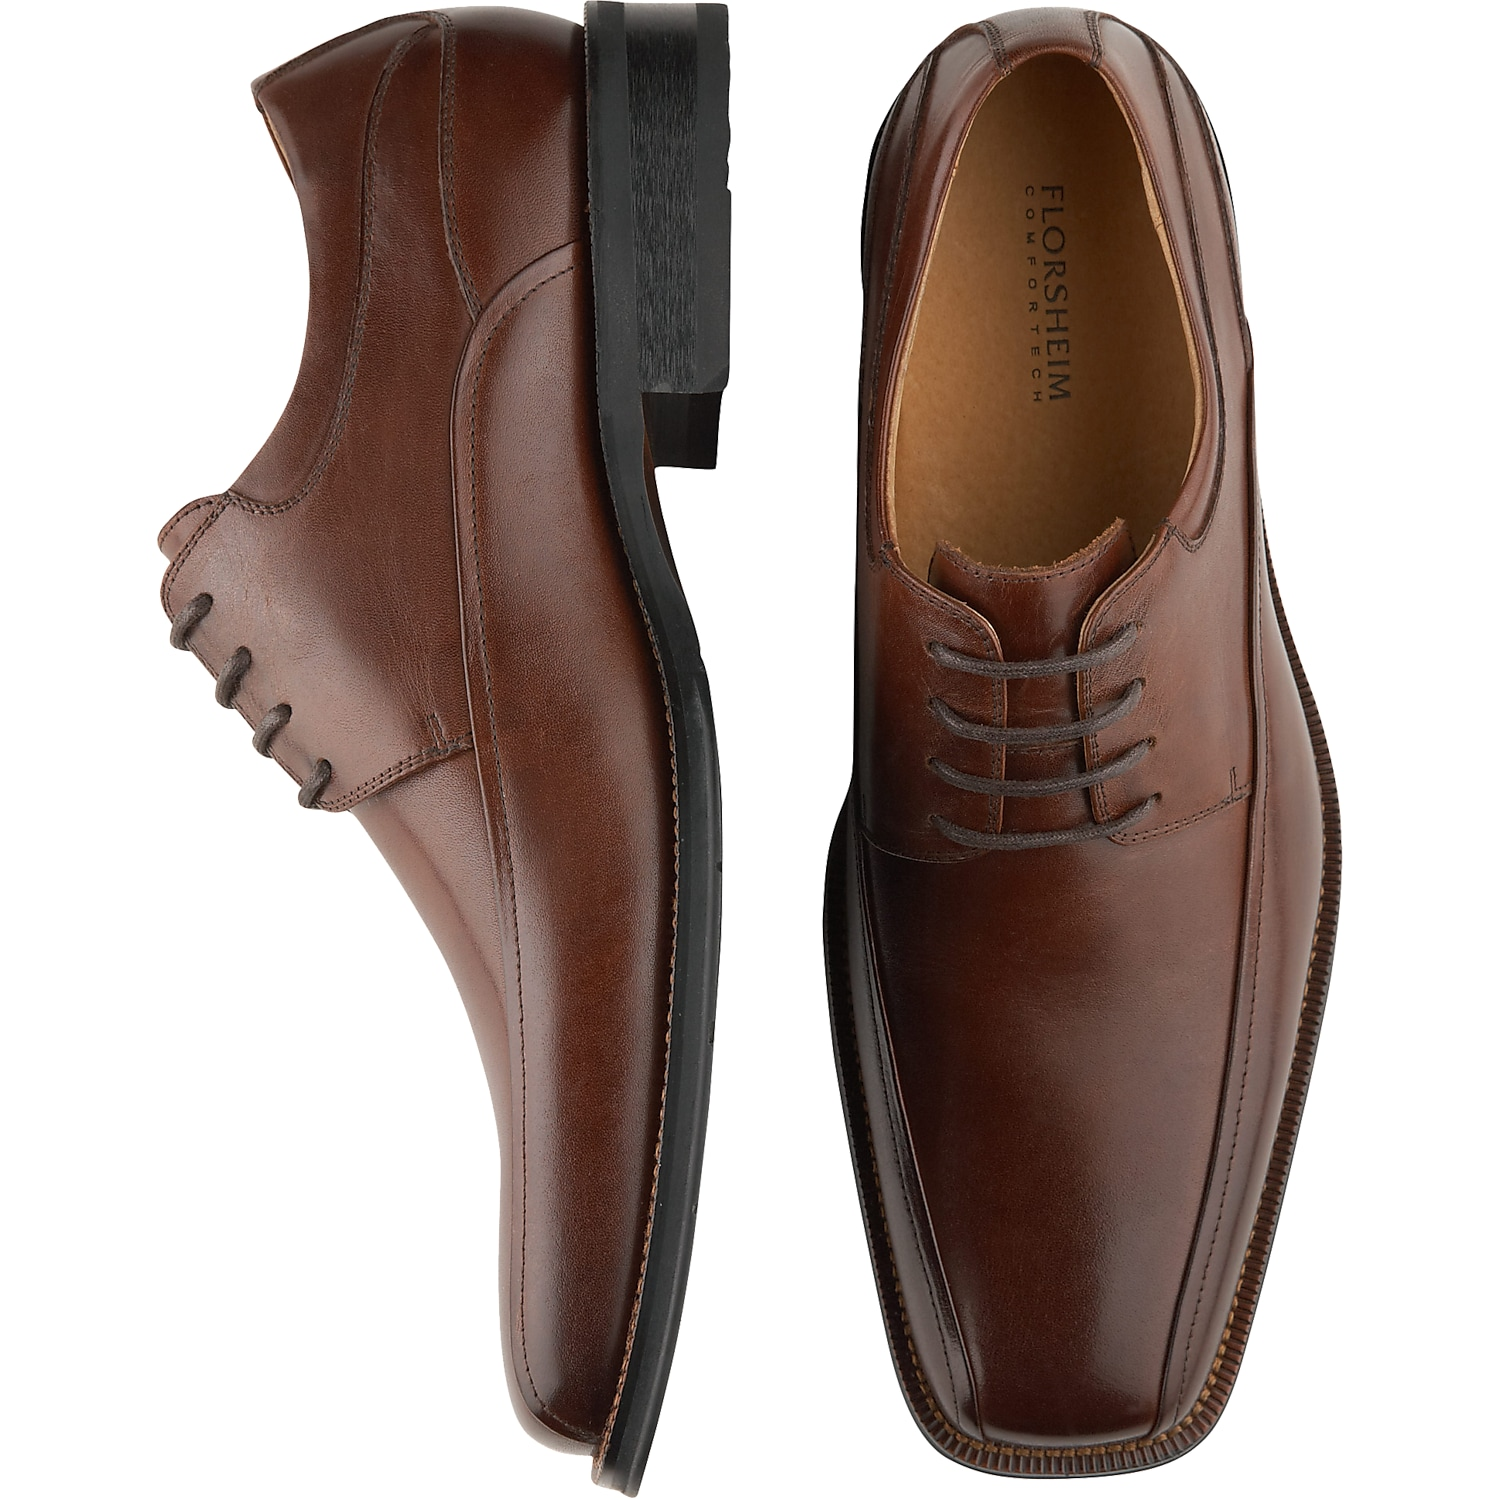 Payless Mens Brown Dress Shoes